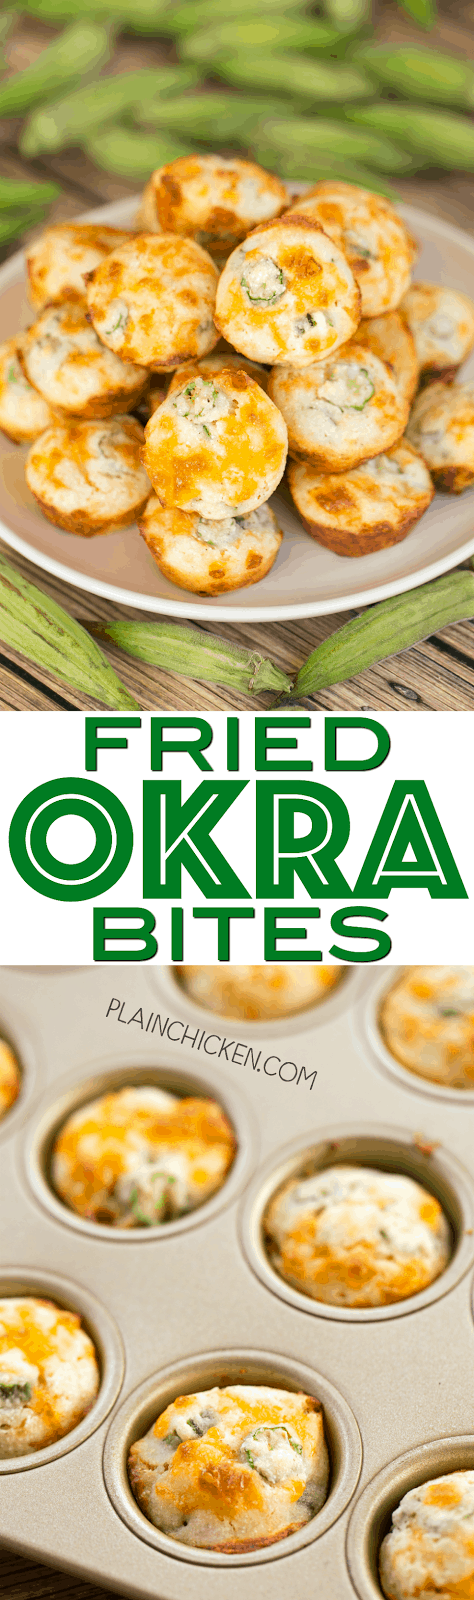 Fried Okra Bites - OMG! SO good! Quick homemade cornbread muffins with cheese and fresh okra. Great for parties and an easy side dish. Only 5 ingredients - self-rising cornmeal, buttermilk, oil, cheddar cheese, fresh okra. Ready in about 10 minutes!!